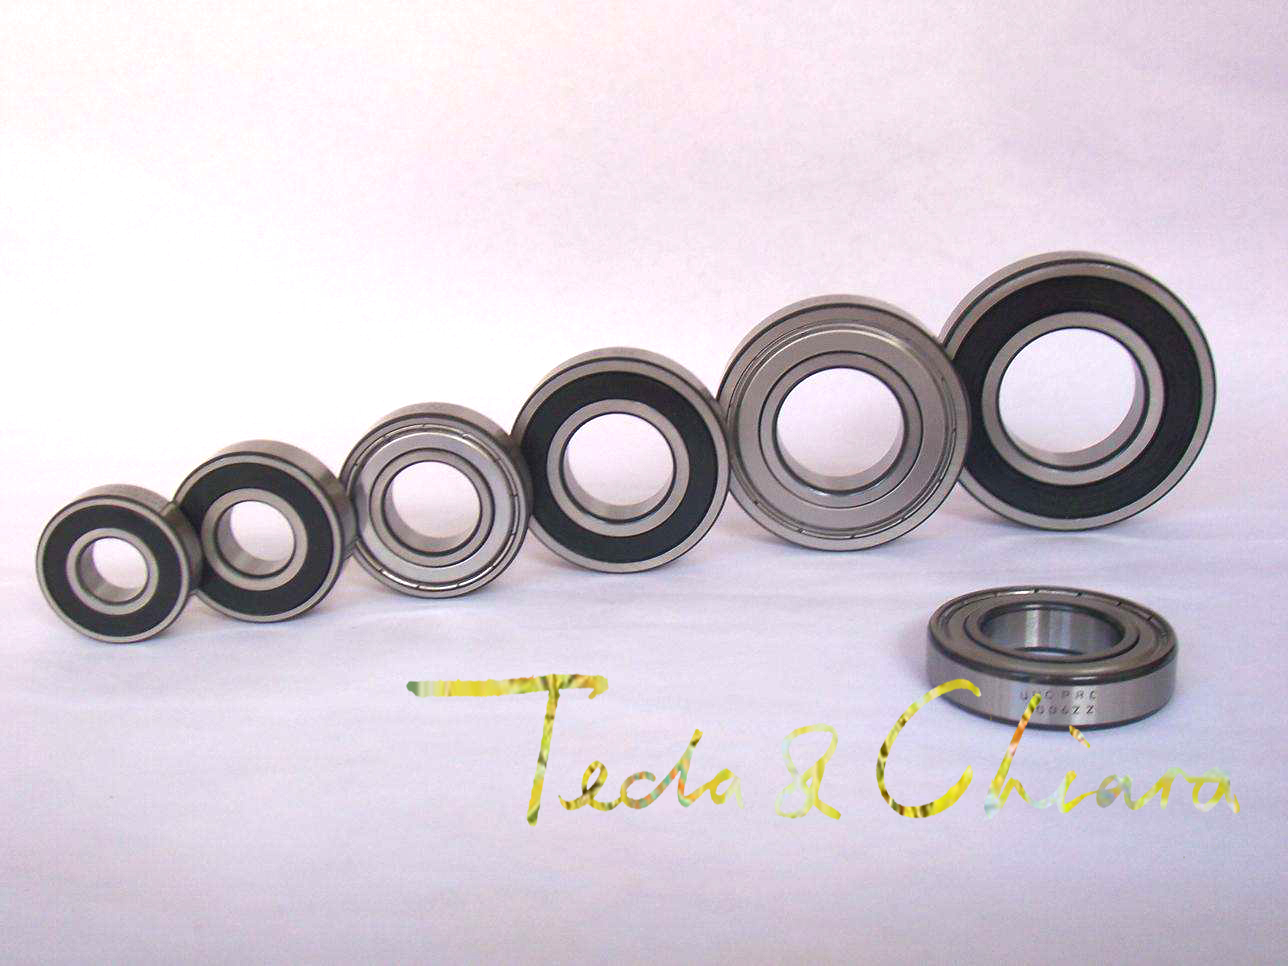 629 629ZZ 629RS 629-2Z 629Z 629-2RS ZZ RS RZ 2RZ Deep Groove Ball Bearings 9 x 26 x 8mm High Quality 6704 6704zz 6704rs 6704 2z 6704z 6704 2rs zz rs rz 2rz deep groove ball bearings 20 x 27 x 4mm high quality